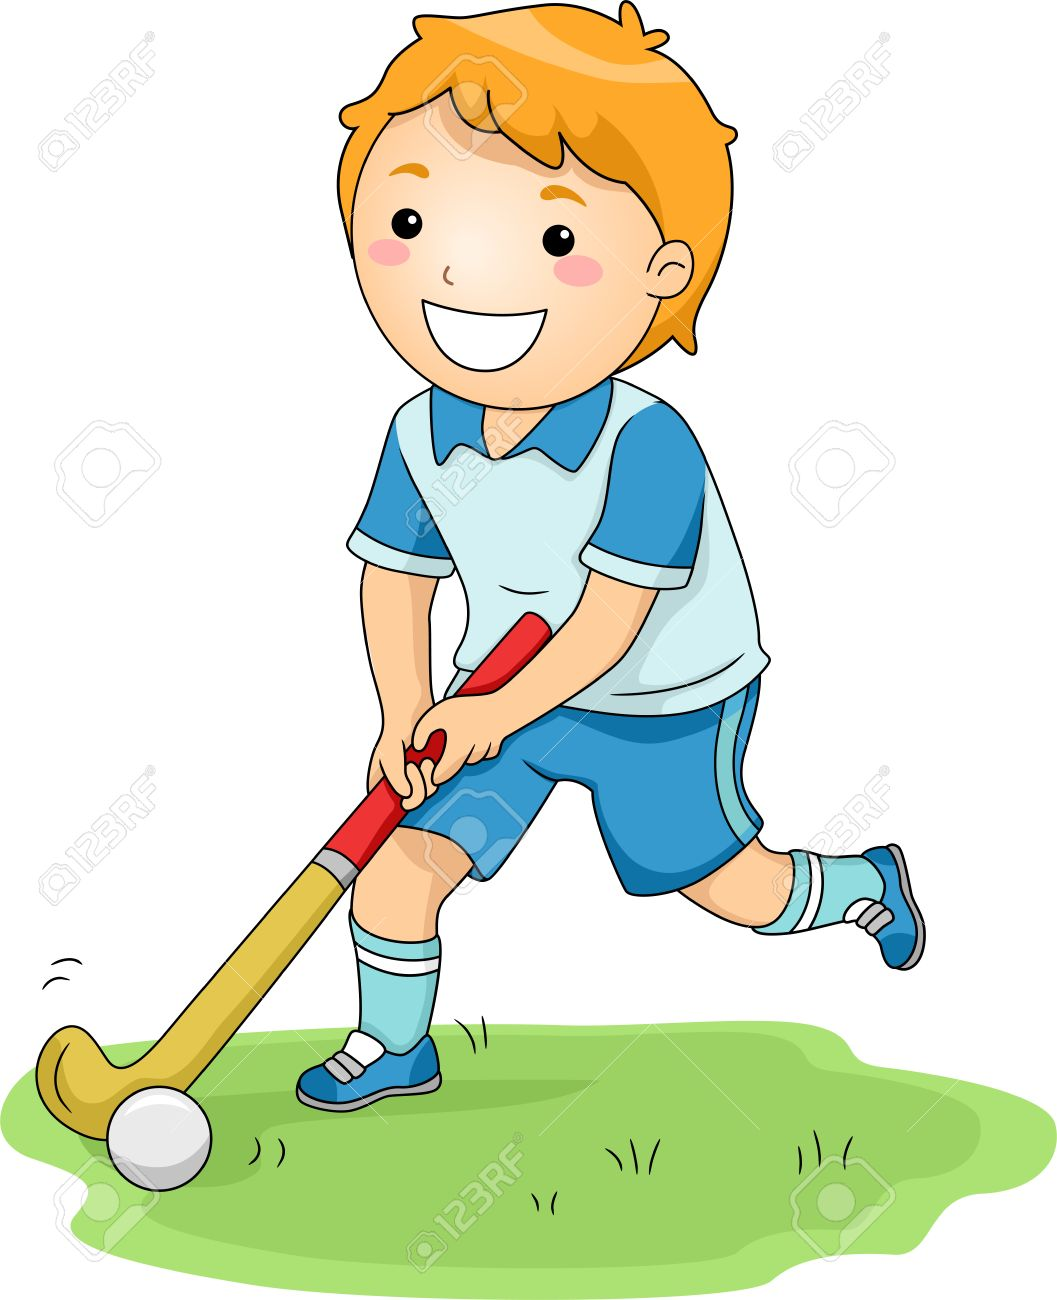 field hockey stick stock photos u0026 pictures royalty free field